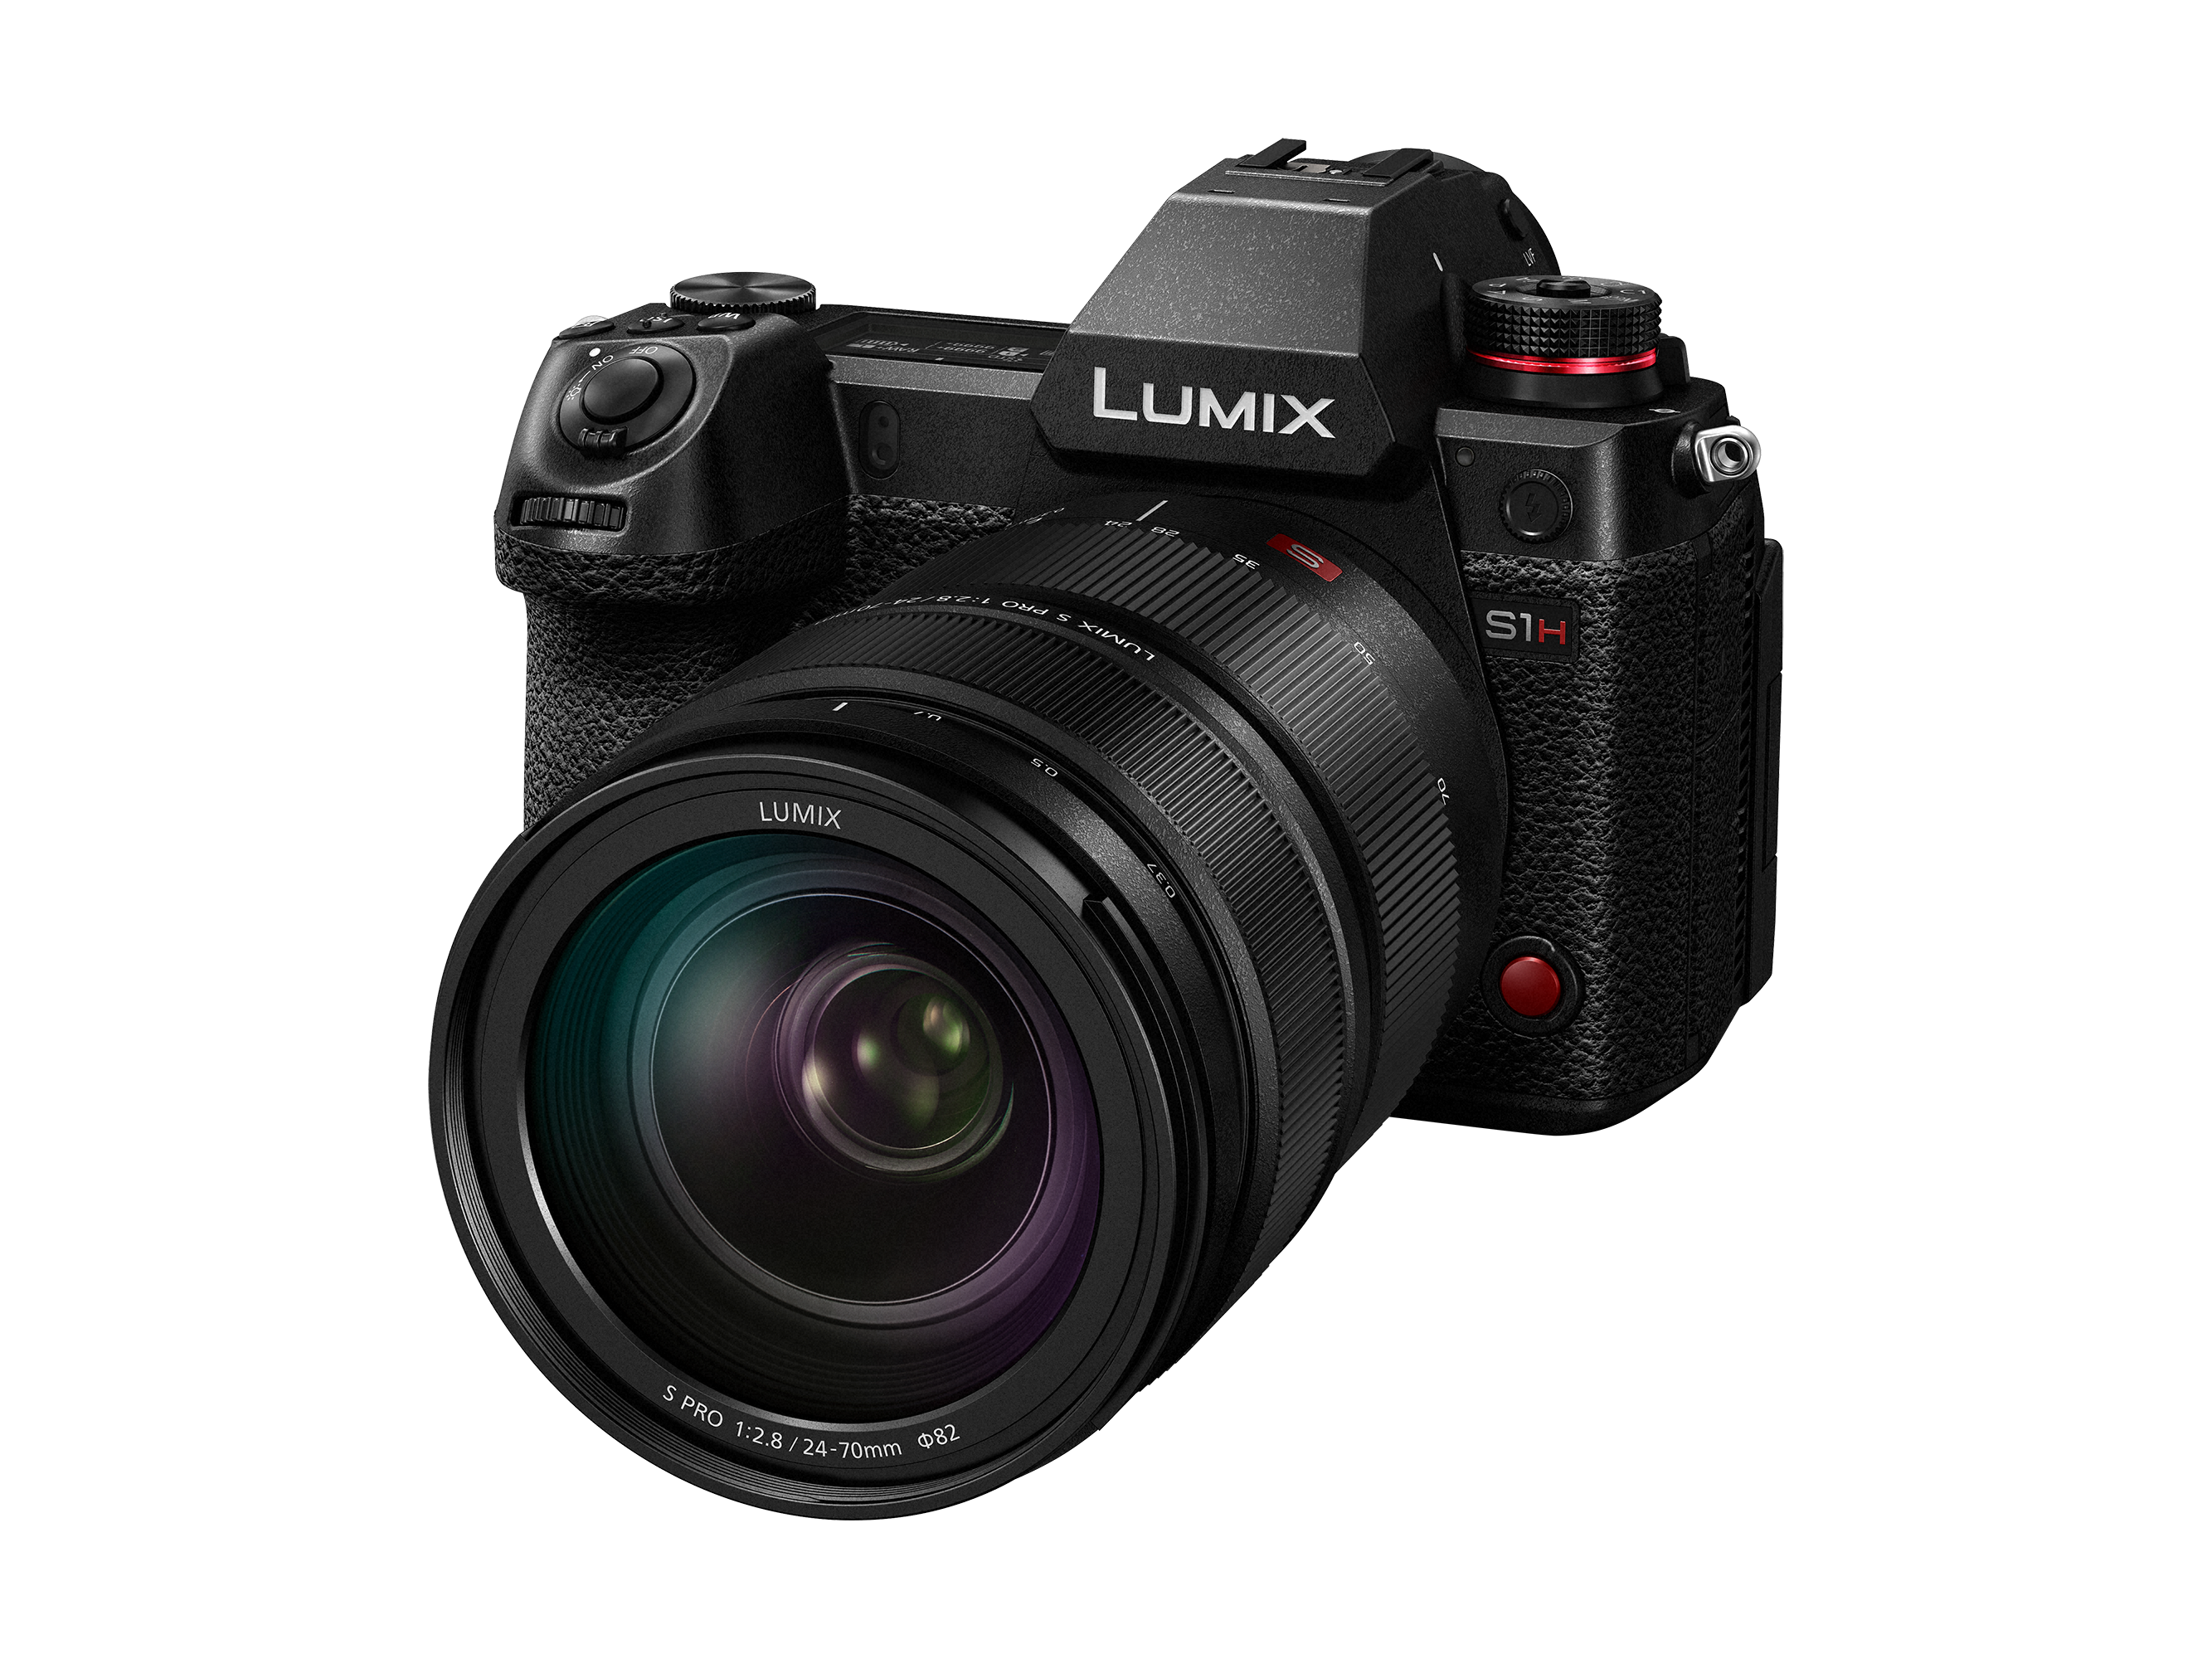 Panasonic Launches a New Full-Frame Mirrorless Camera, the